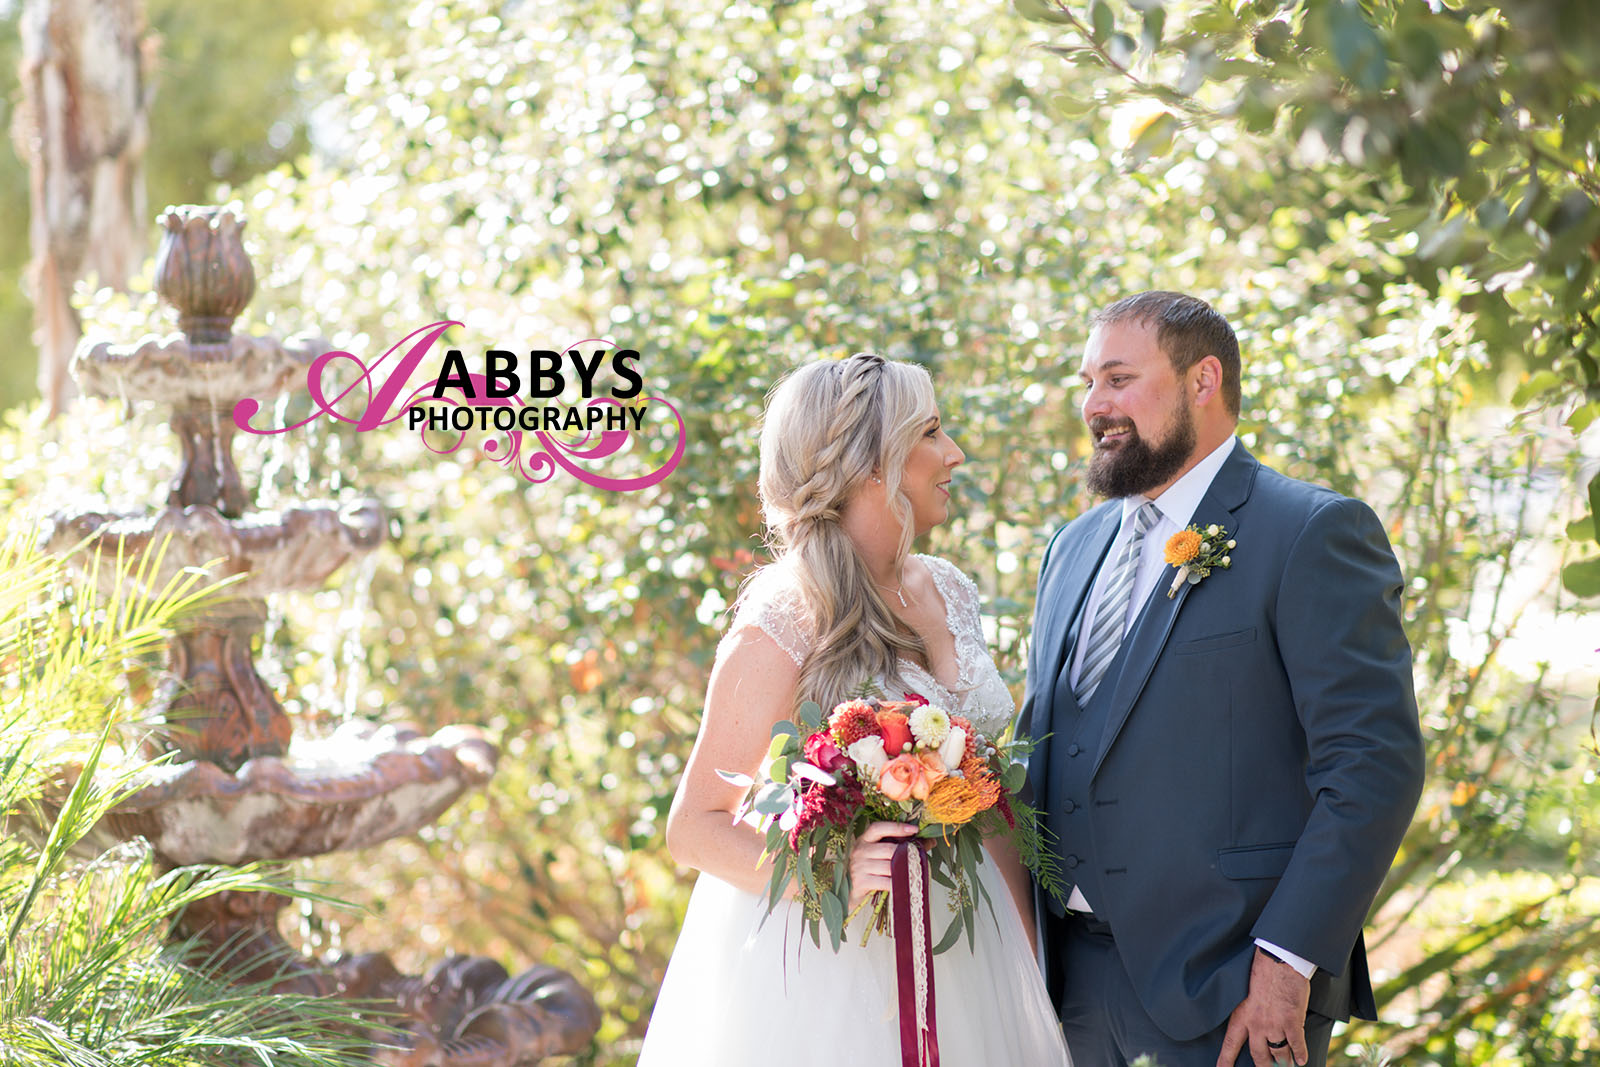 A wedding isn't a wedding without the right photography, and Abbys Photography is right for you.